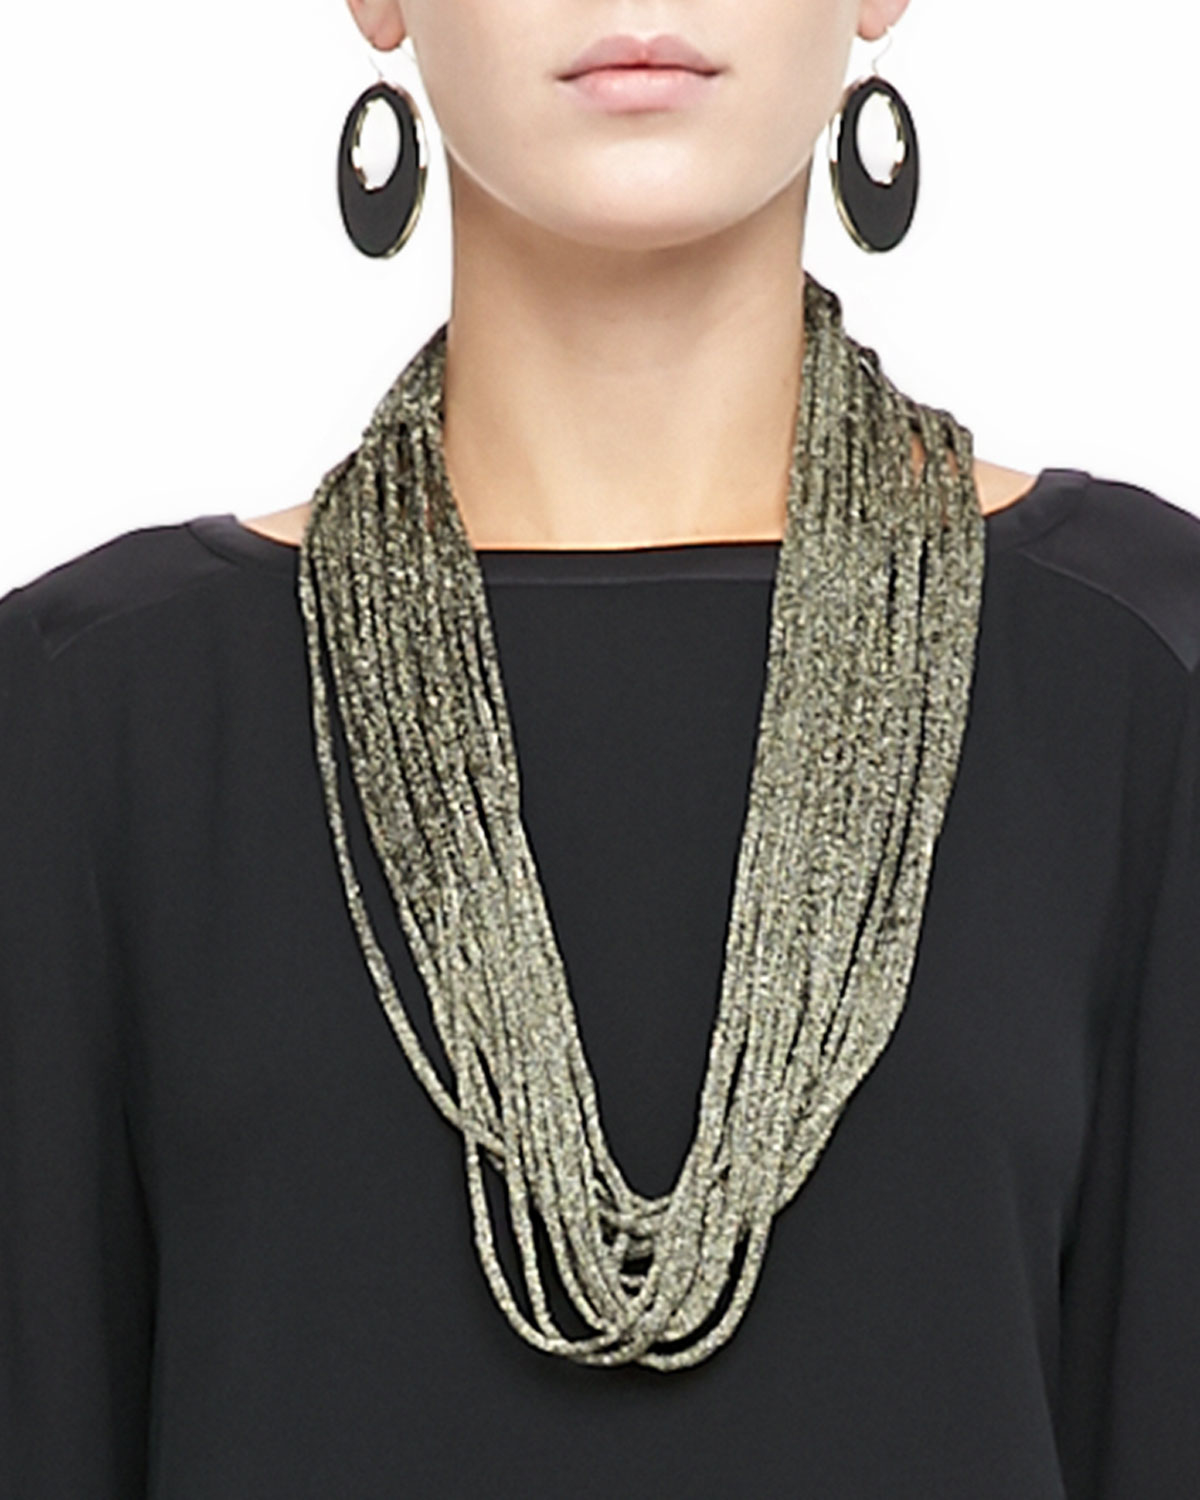 Italian Gold Chain >> Lyst - Eileen Fisher Sparkle Knit Scarf Necklace in Metallic